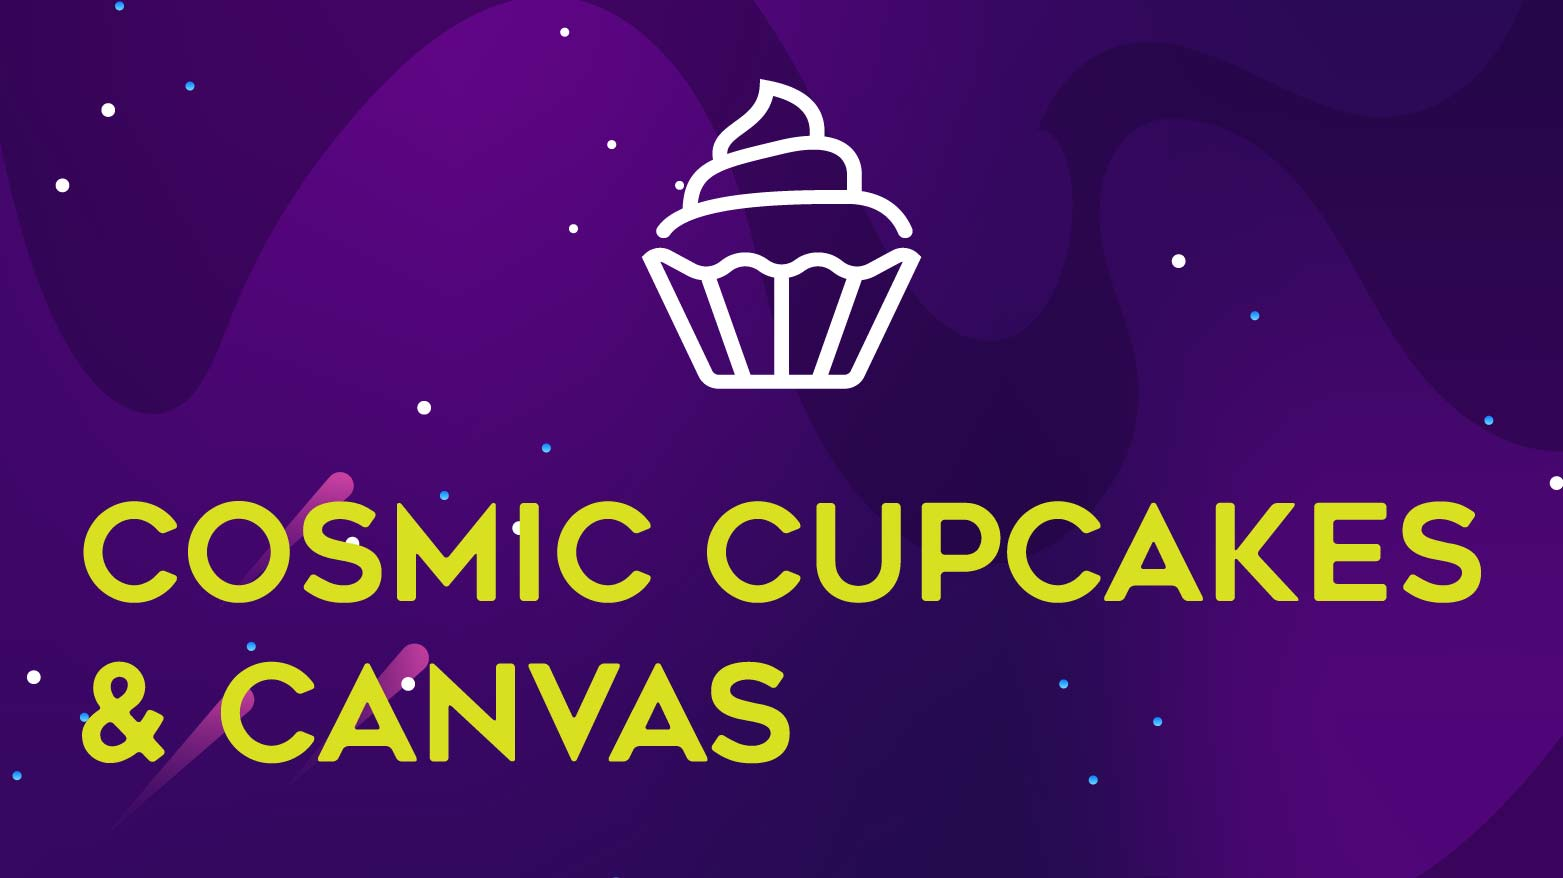 Cosmic Cupcakes & Canvas - HAAF - CANCELLED